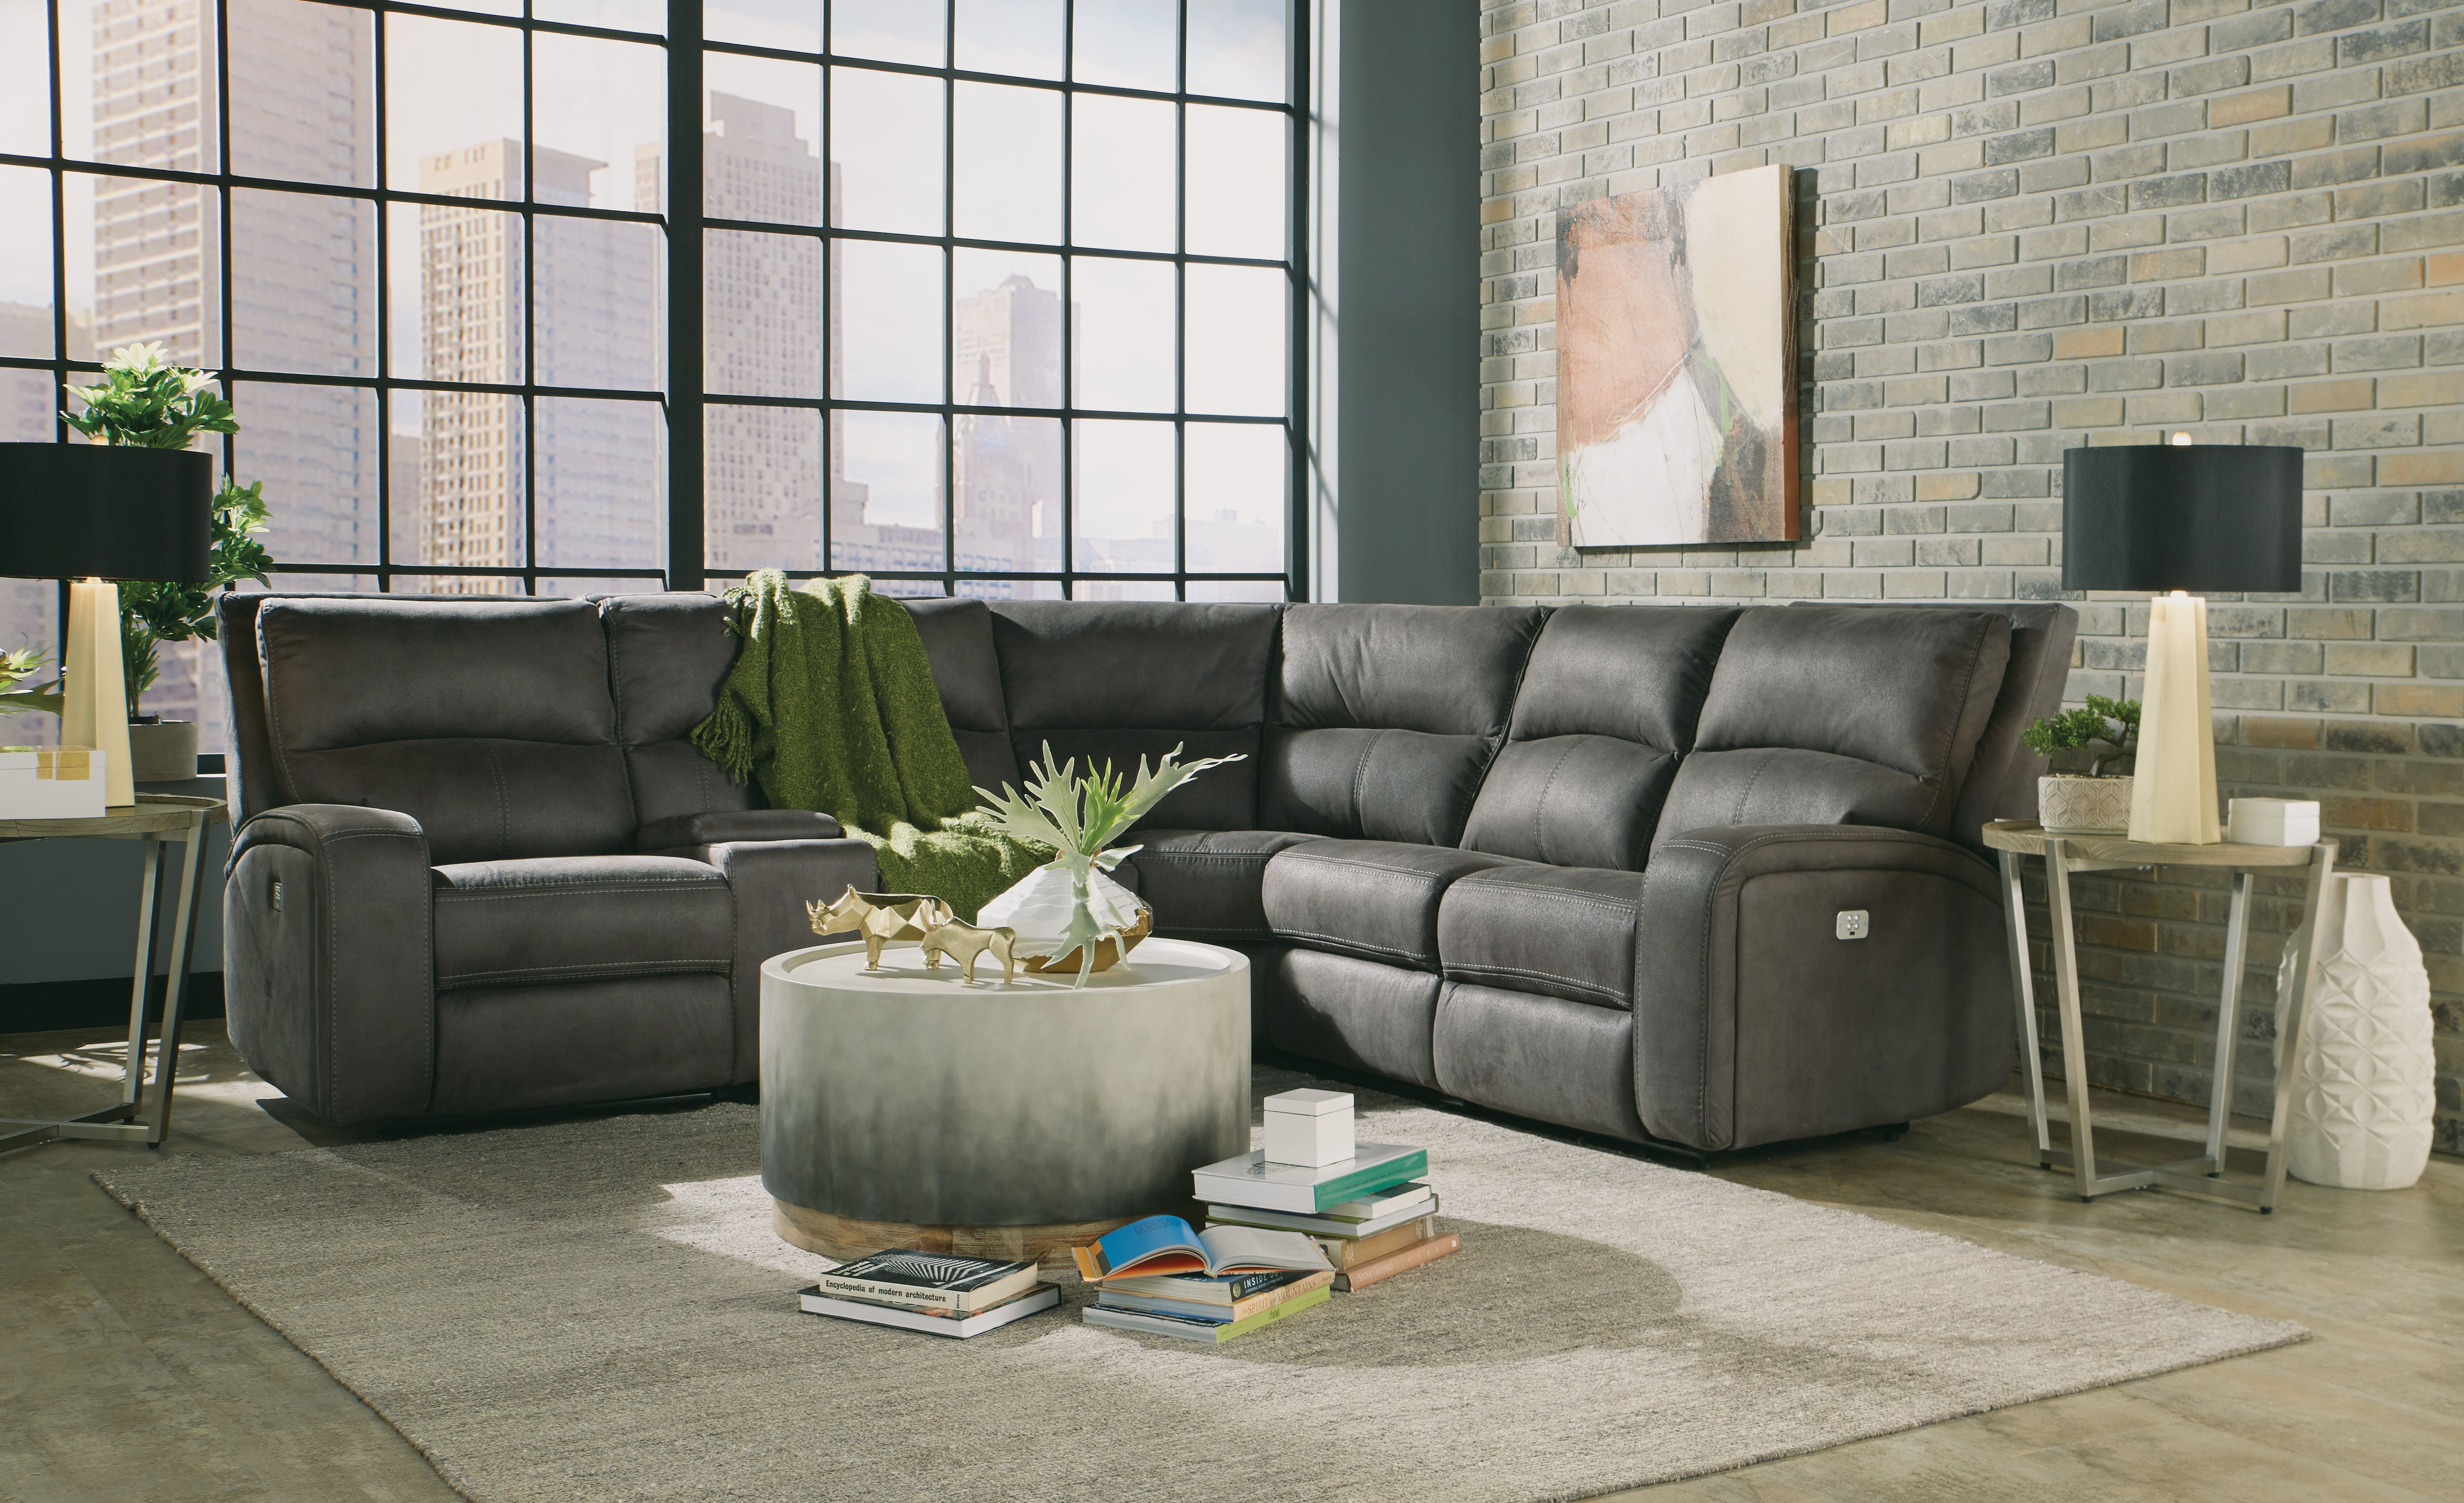 Sectional By Flexsteel Furniture Flexsteel Is Available In Washington State From Fitterer S Furnitur In 2020 With Images Flexsteel Furniture Furniture Quality Furniture